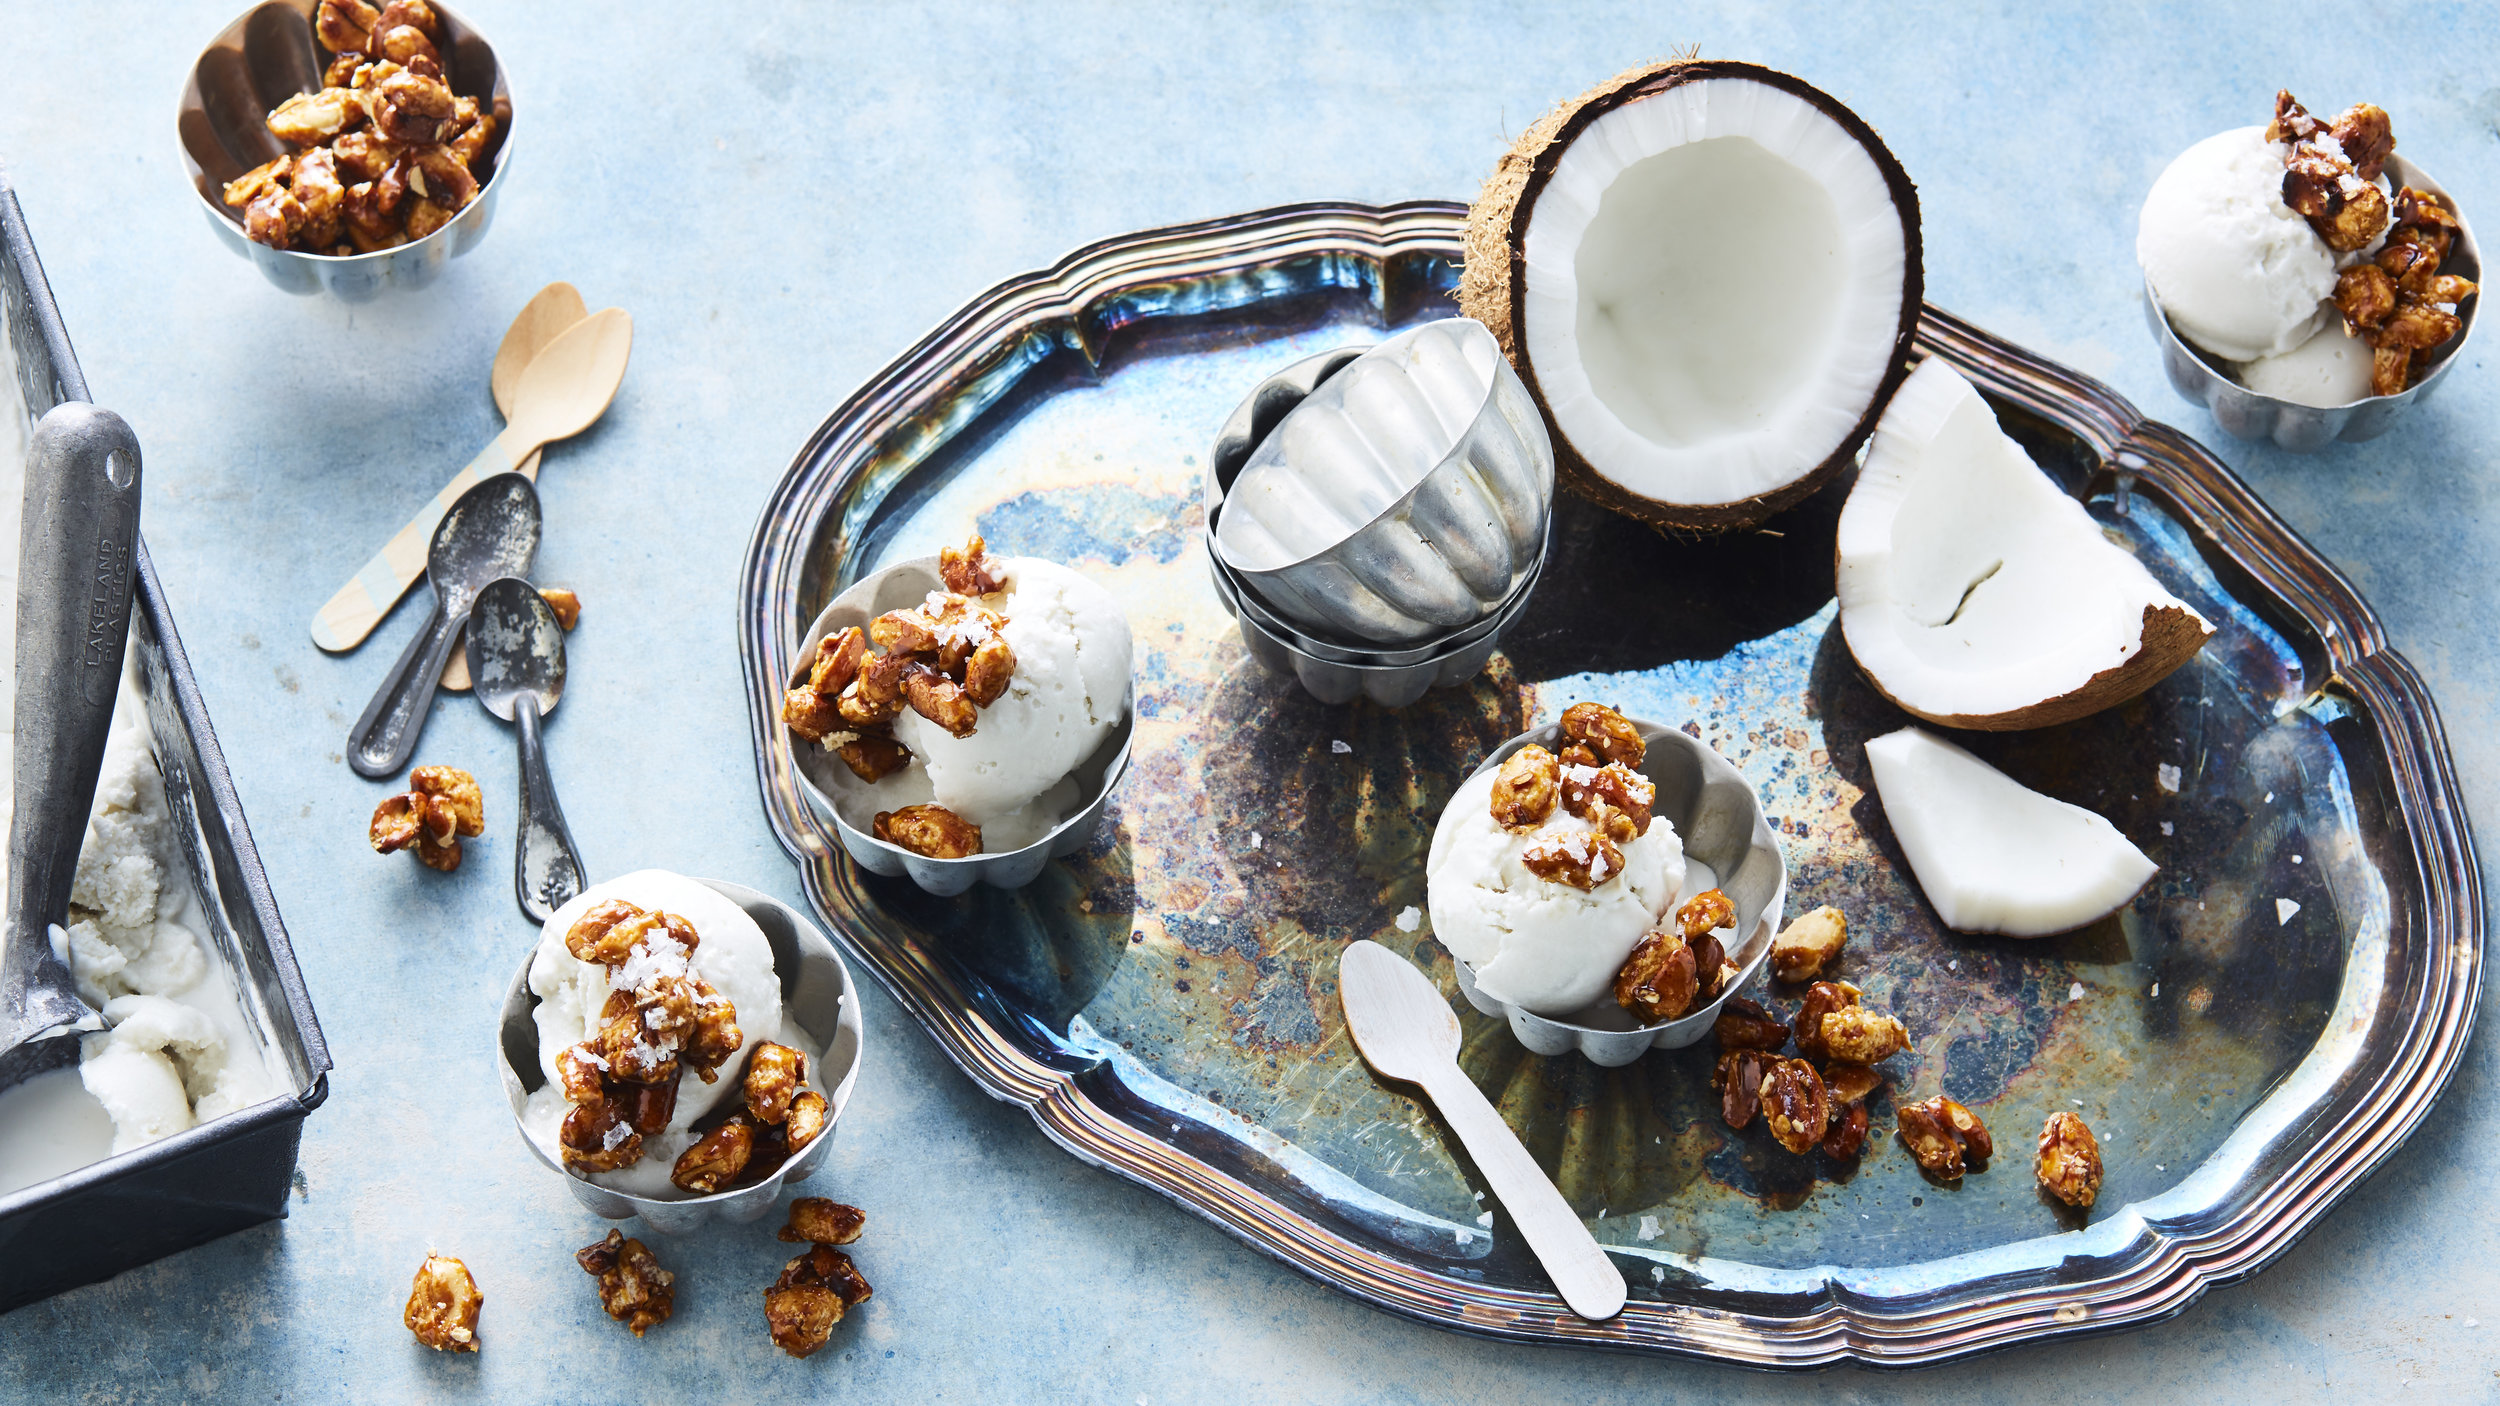 Coconut Sorbet with Salted Candied Peanuts, Photography: Brett Stevens, Art Direction: Anne Marie Cummins, Food and Props Styling: Marcus Hay